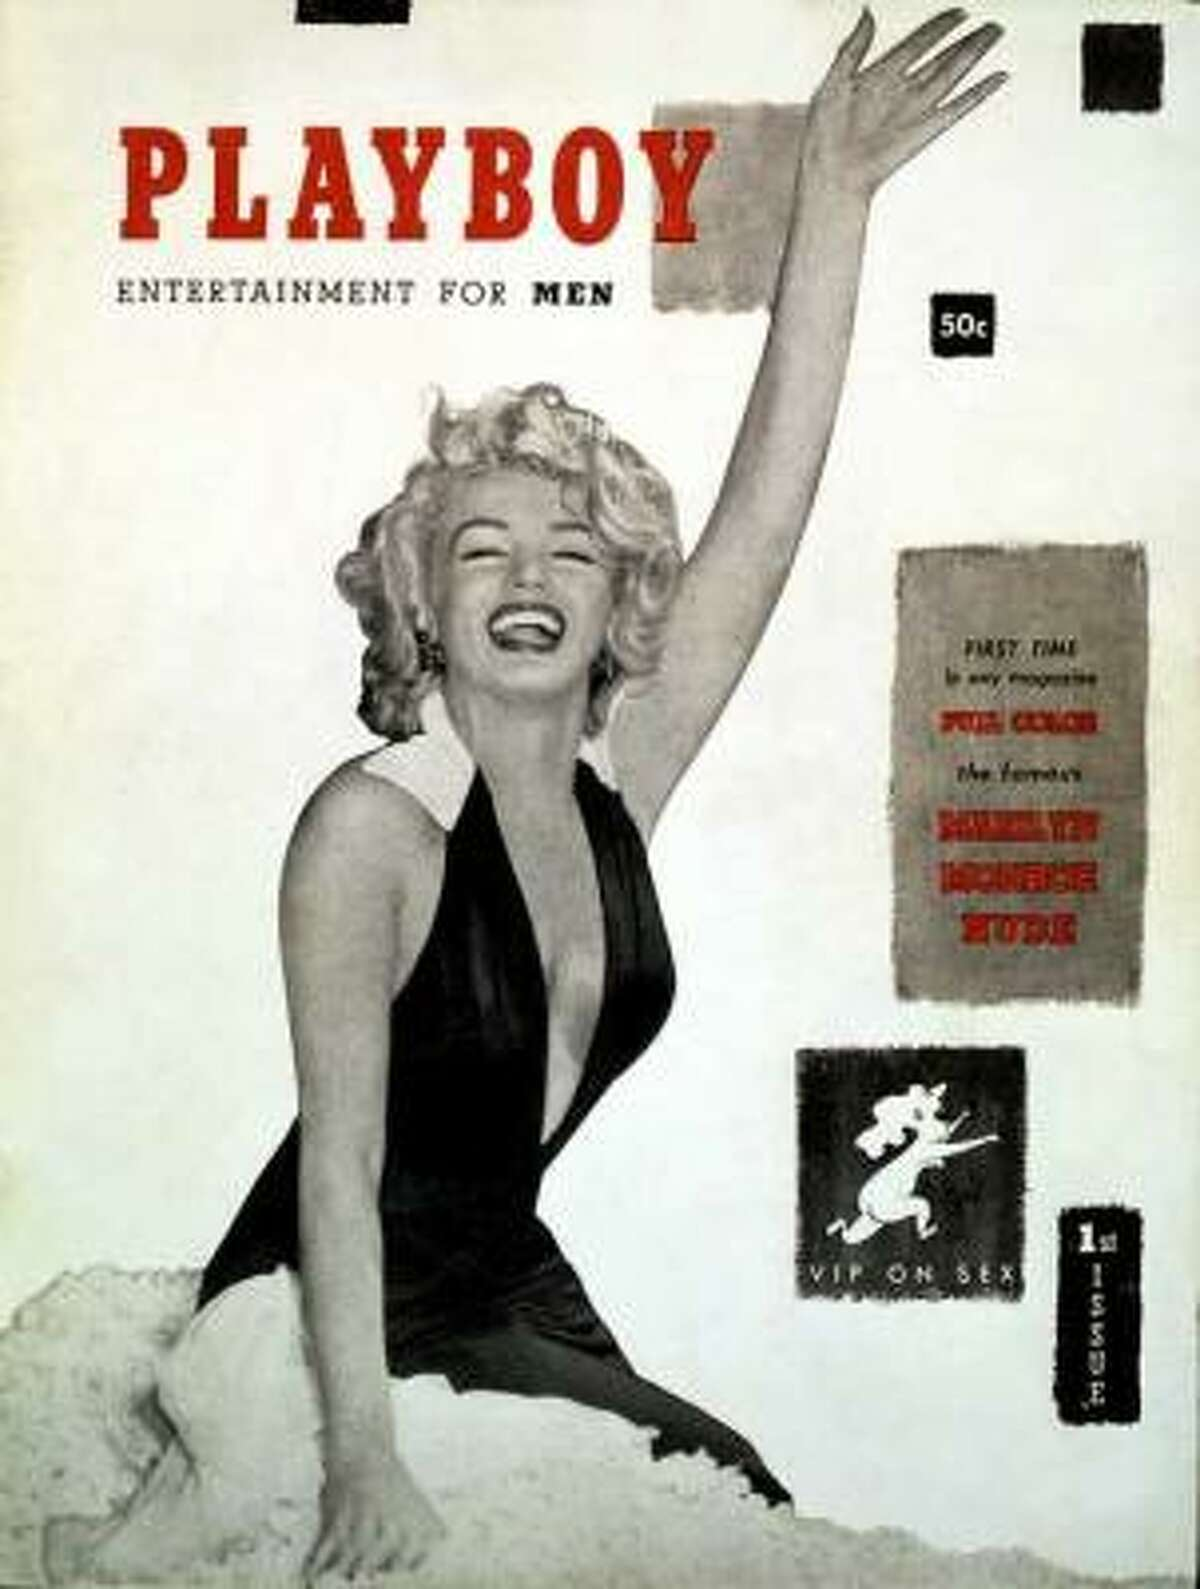 The first cover of Playboy featured Marilyn Monroe, though the shots were from a calendar shoot and she never actually posed for Playboy. It was undated as Hugh Hefner was unsure if there would be a second. December 1953.